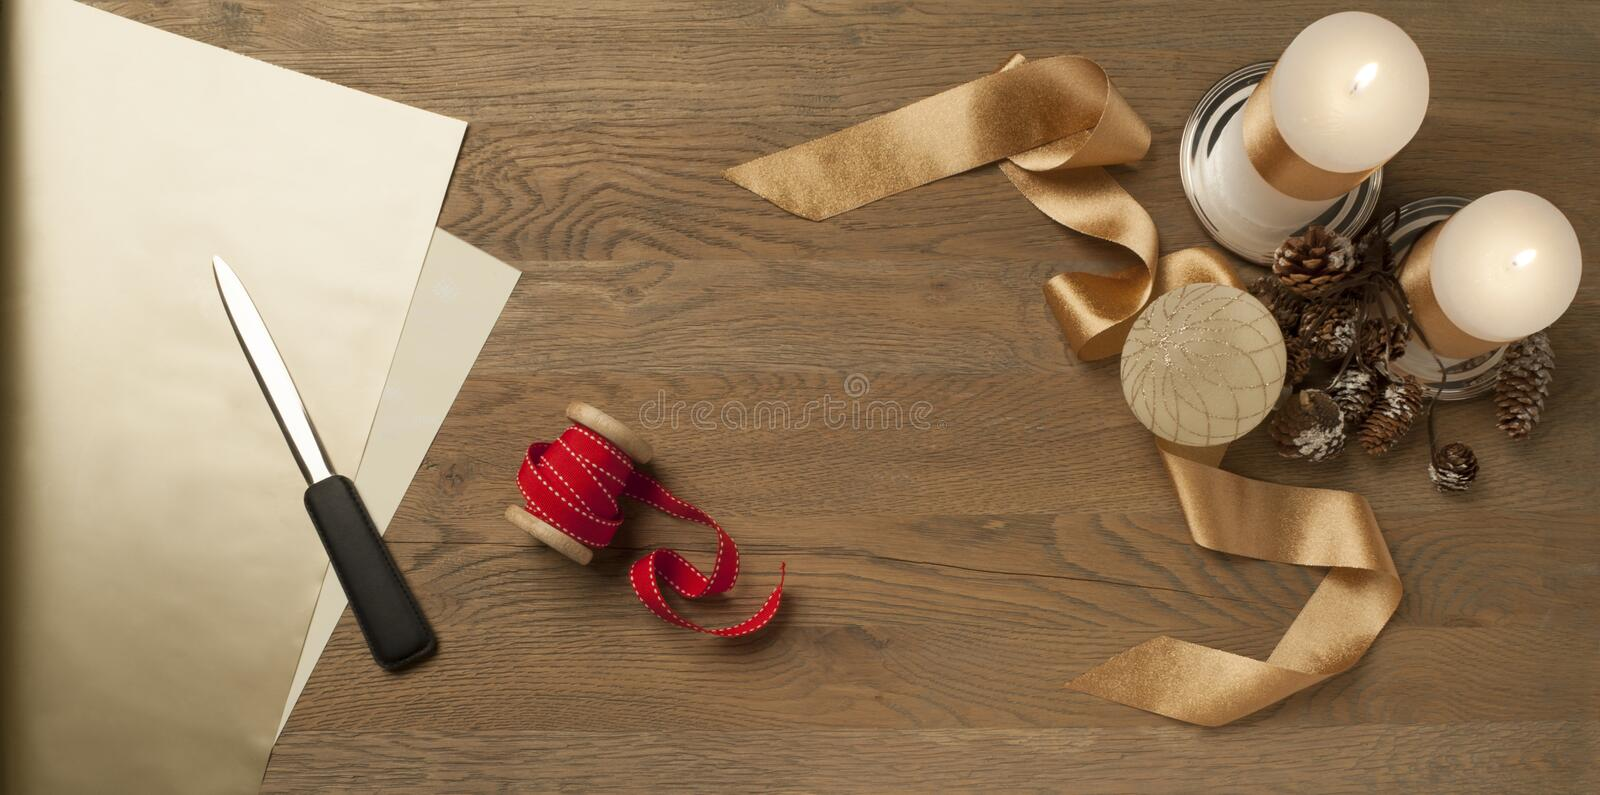 Christmas wooden table with red and golden ribbon and candles stock image